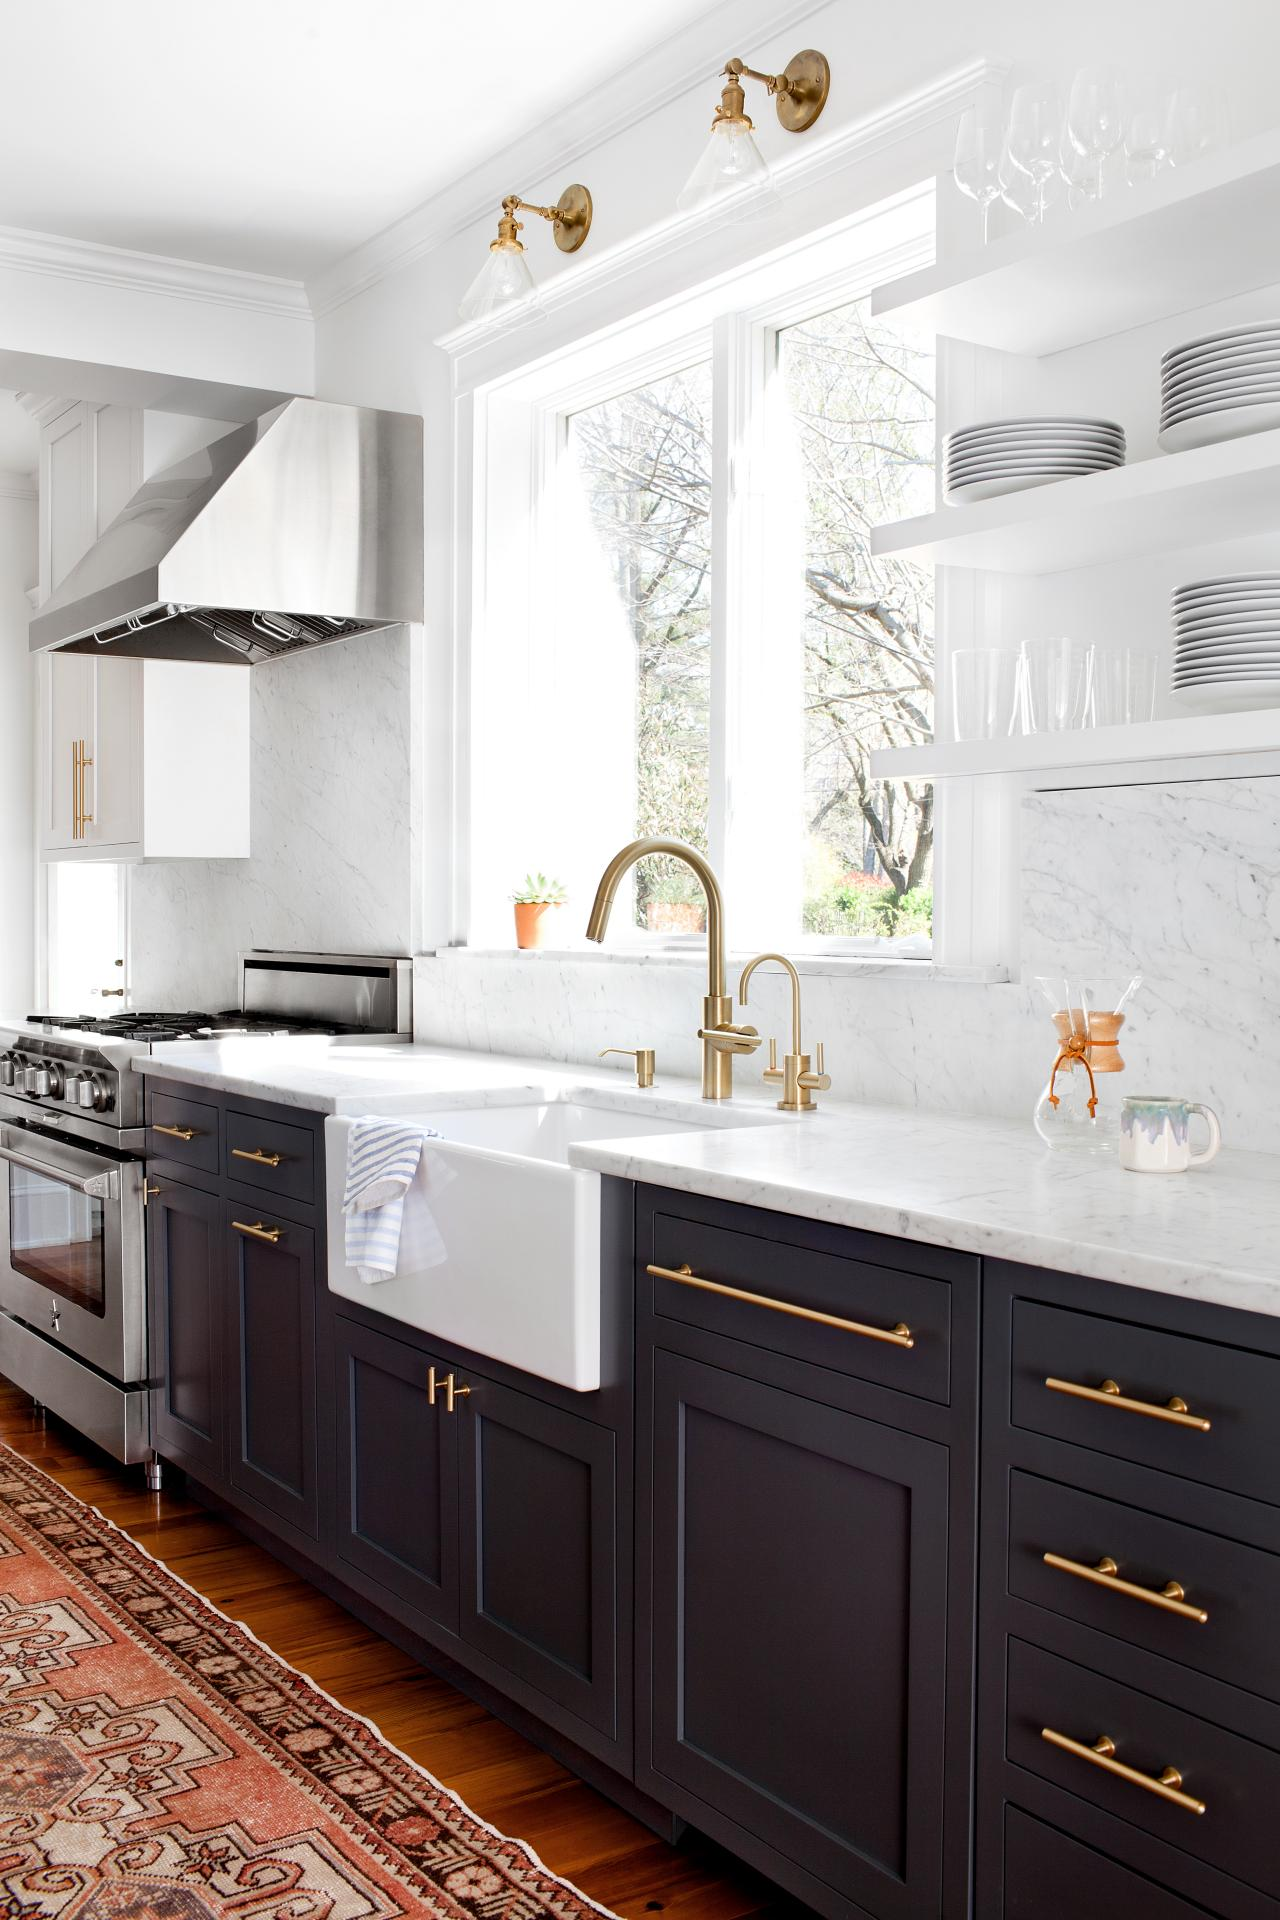 Two Tone Kitchen Cabinet Ideas How To Use 2 Color On Cabinets Apartment Therapy